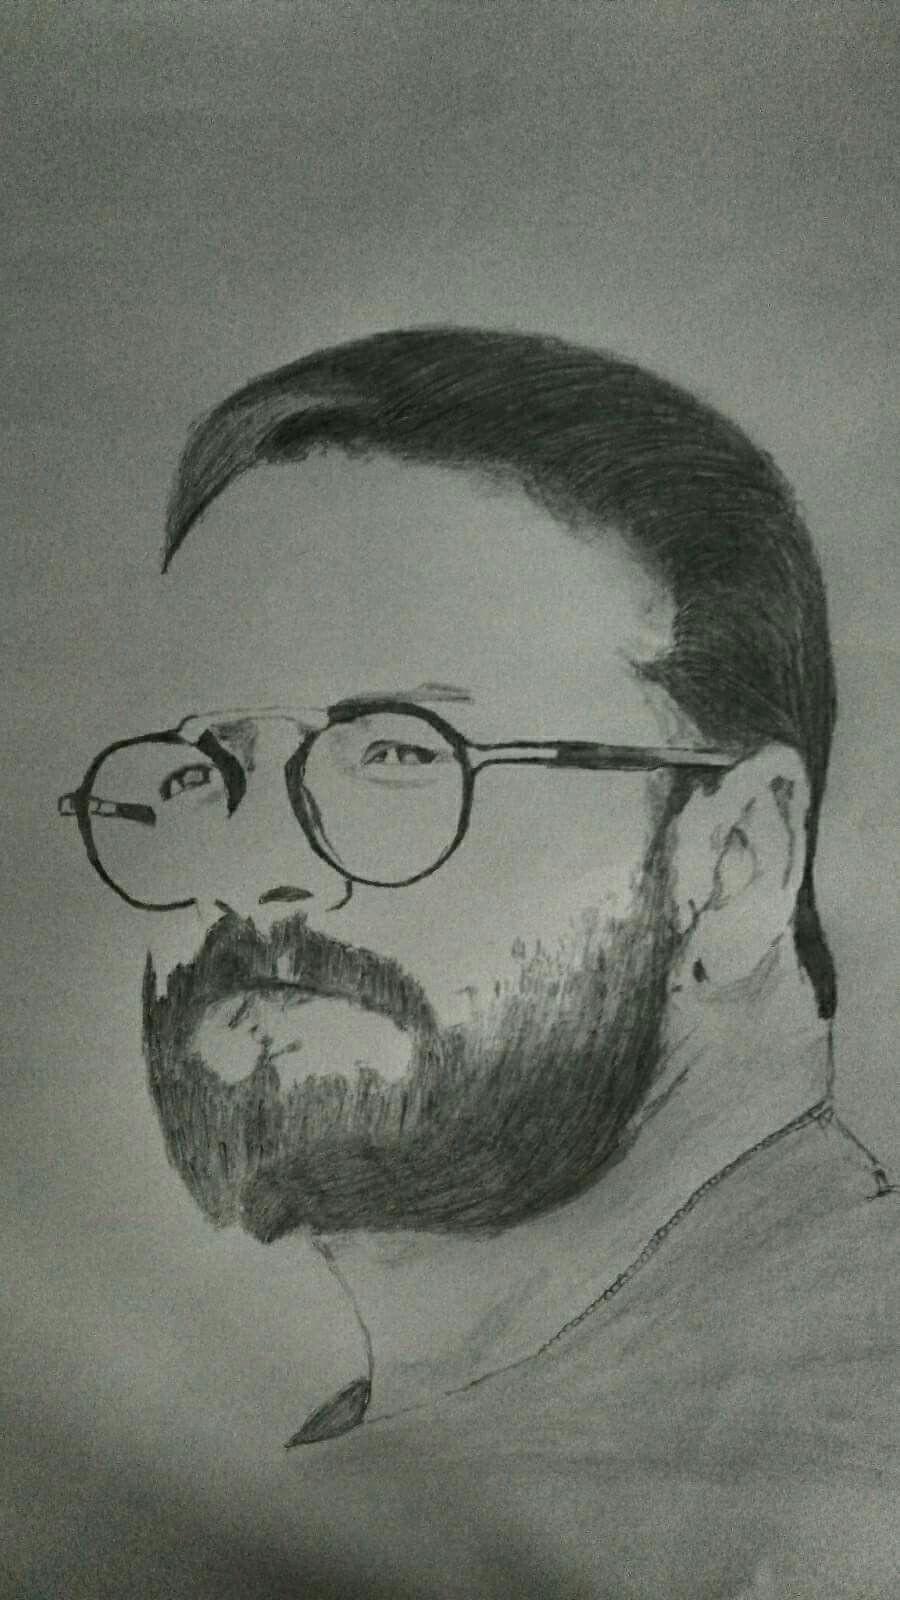 Pencils sketches jayasurya actor pencil drawings cinema movies graphite drawings color pencil